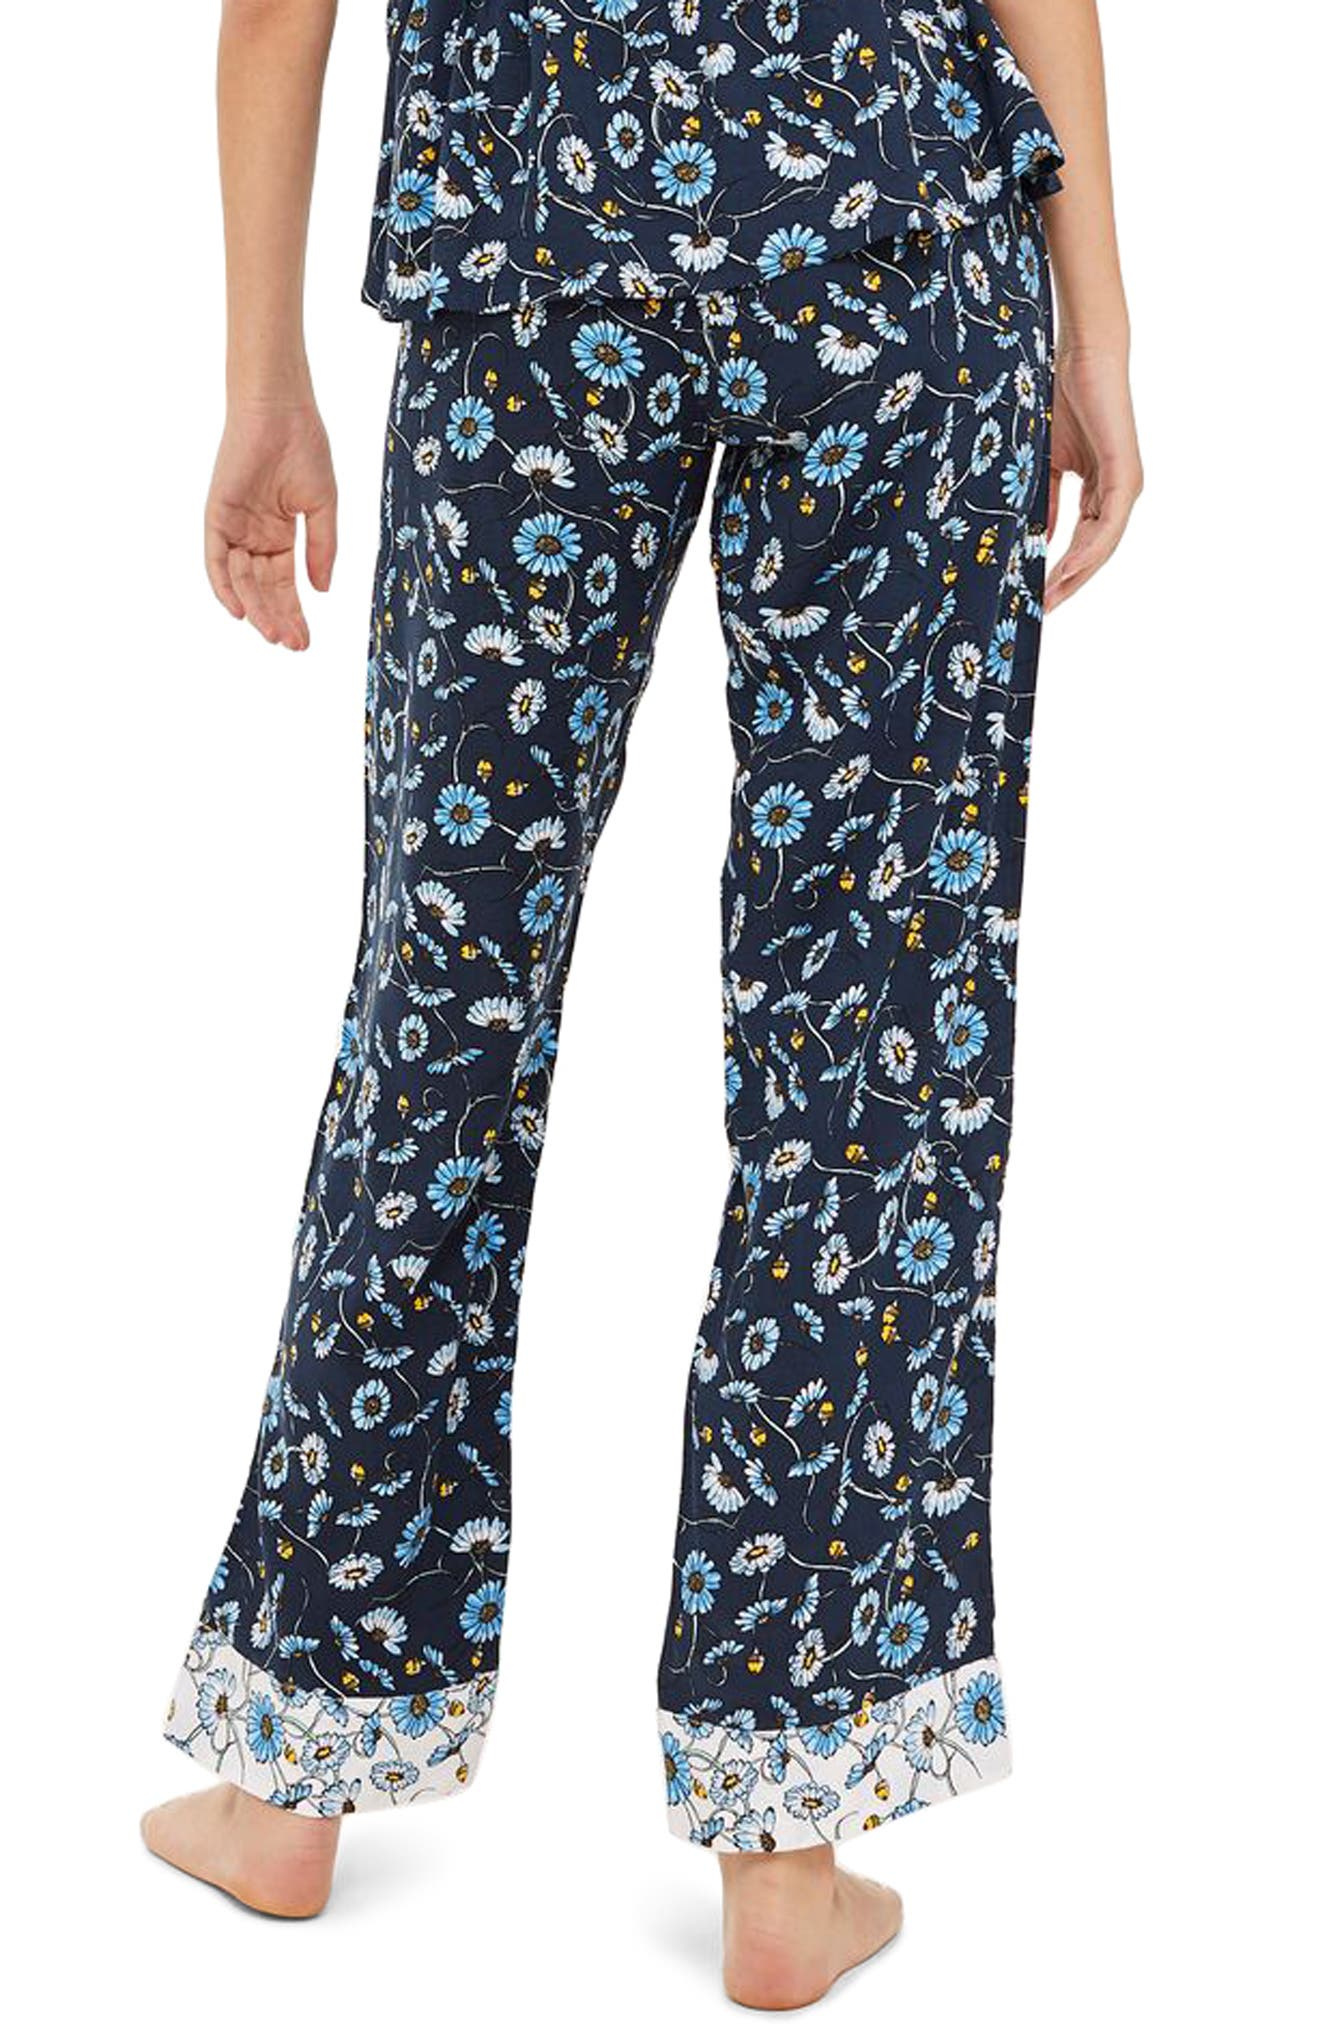 Floral Sleep Trouser Pajama Pants,                             Alternate thumbnail 2, color,                             NAVY MULTI